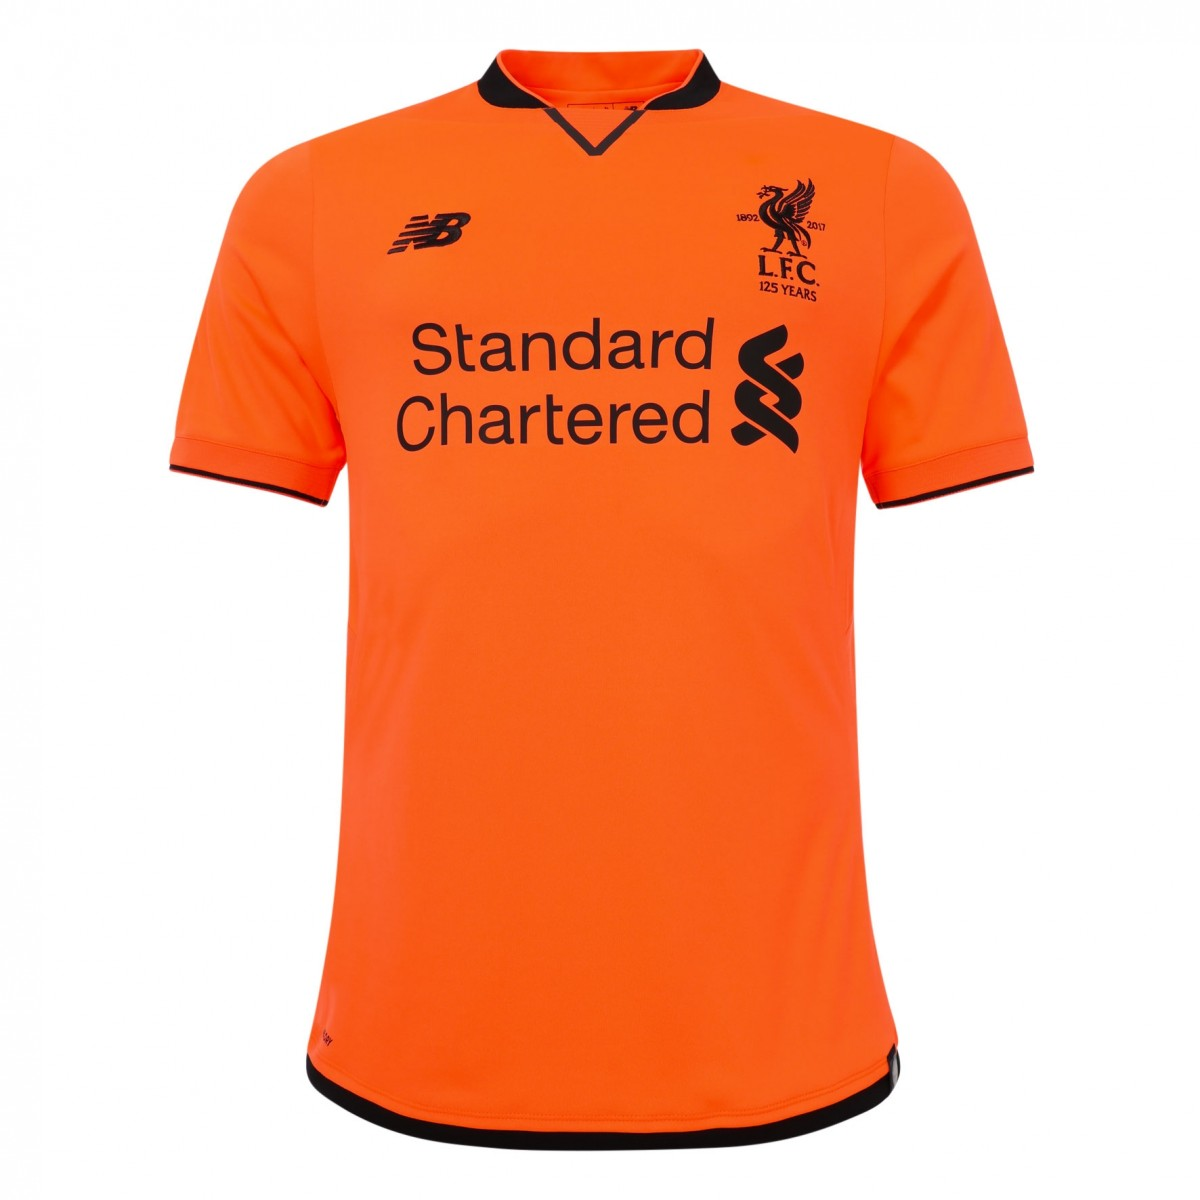 Liverpool FC third kit, orange with dark brown and unique collar.